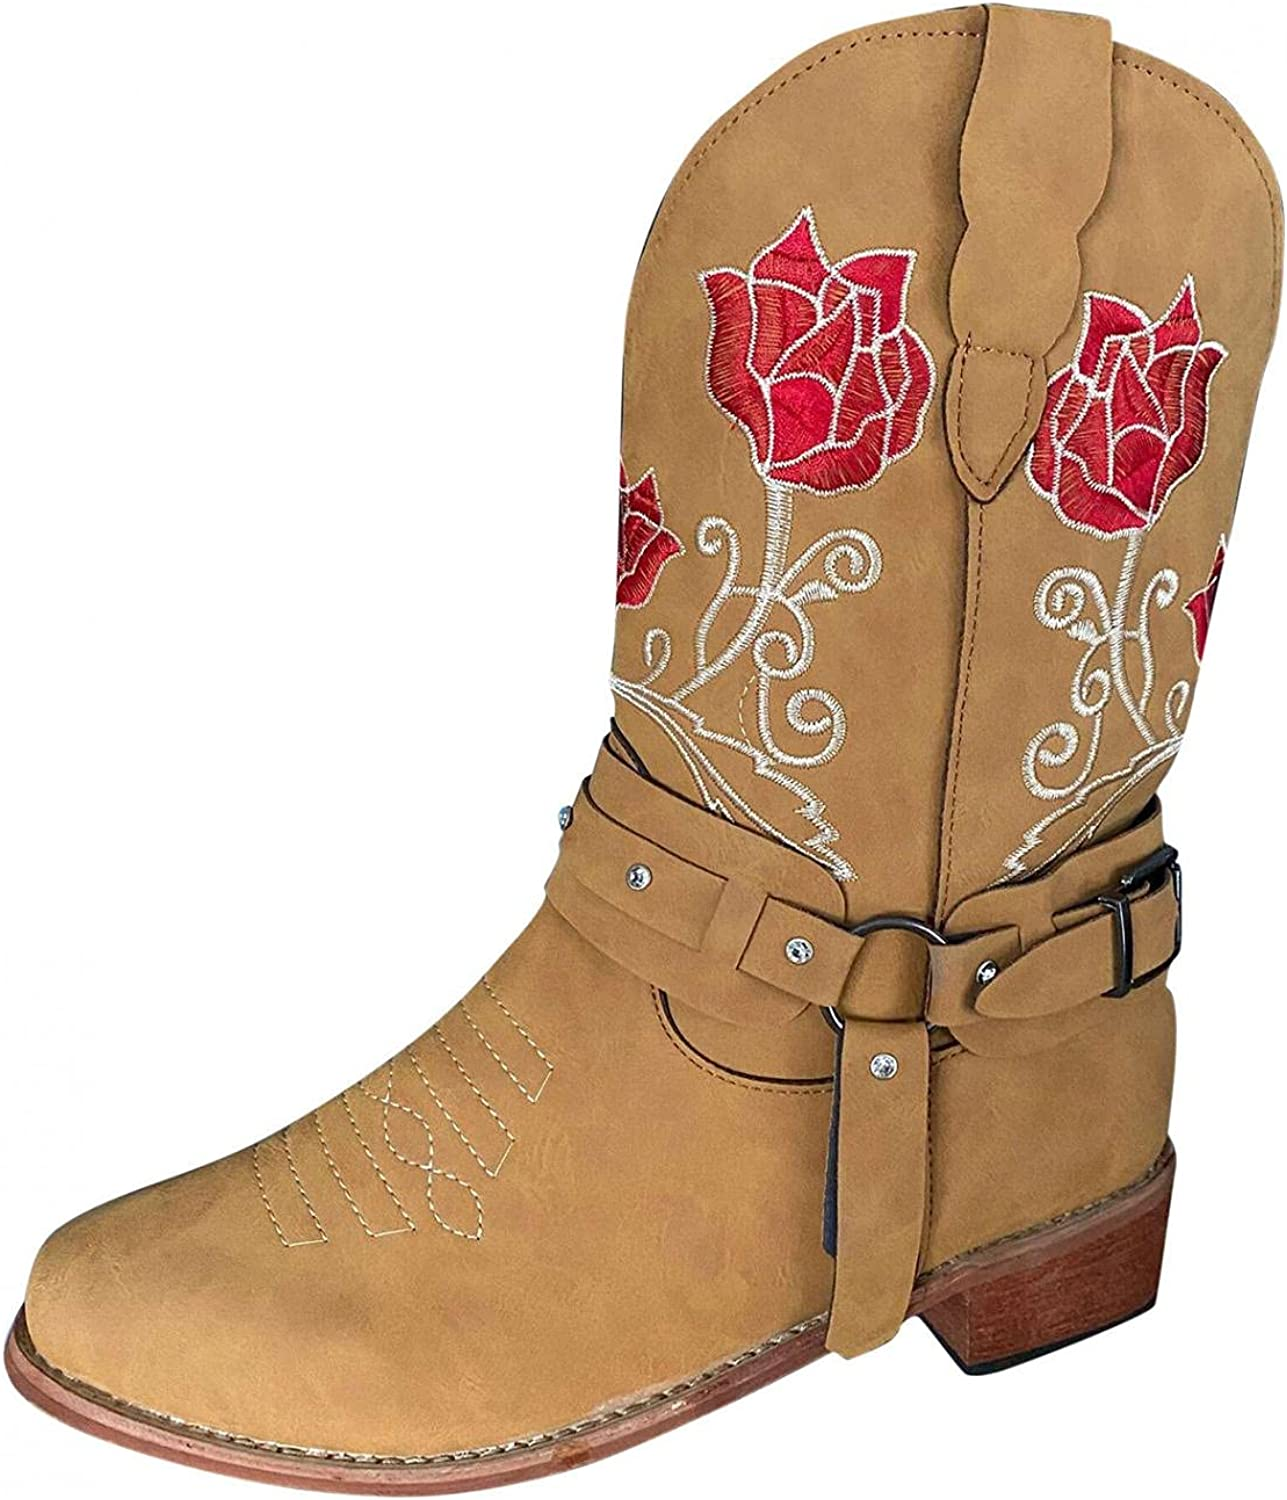 Masbird Cowboy Boots for Women Square Toe Flower Embroidery Cowb